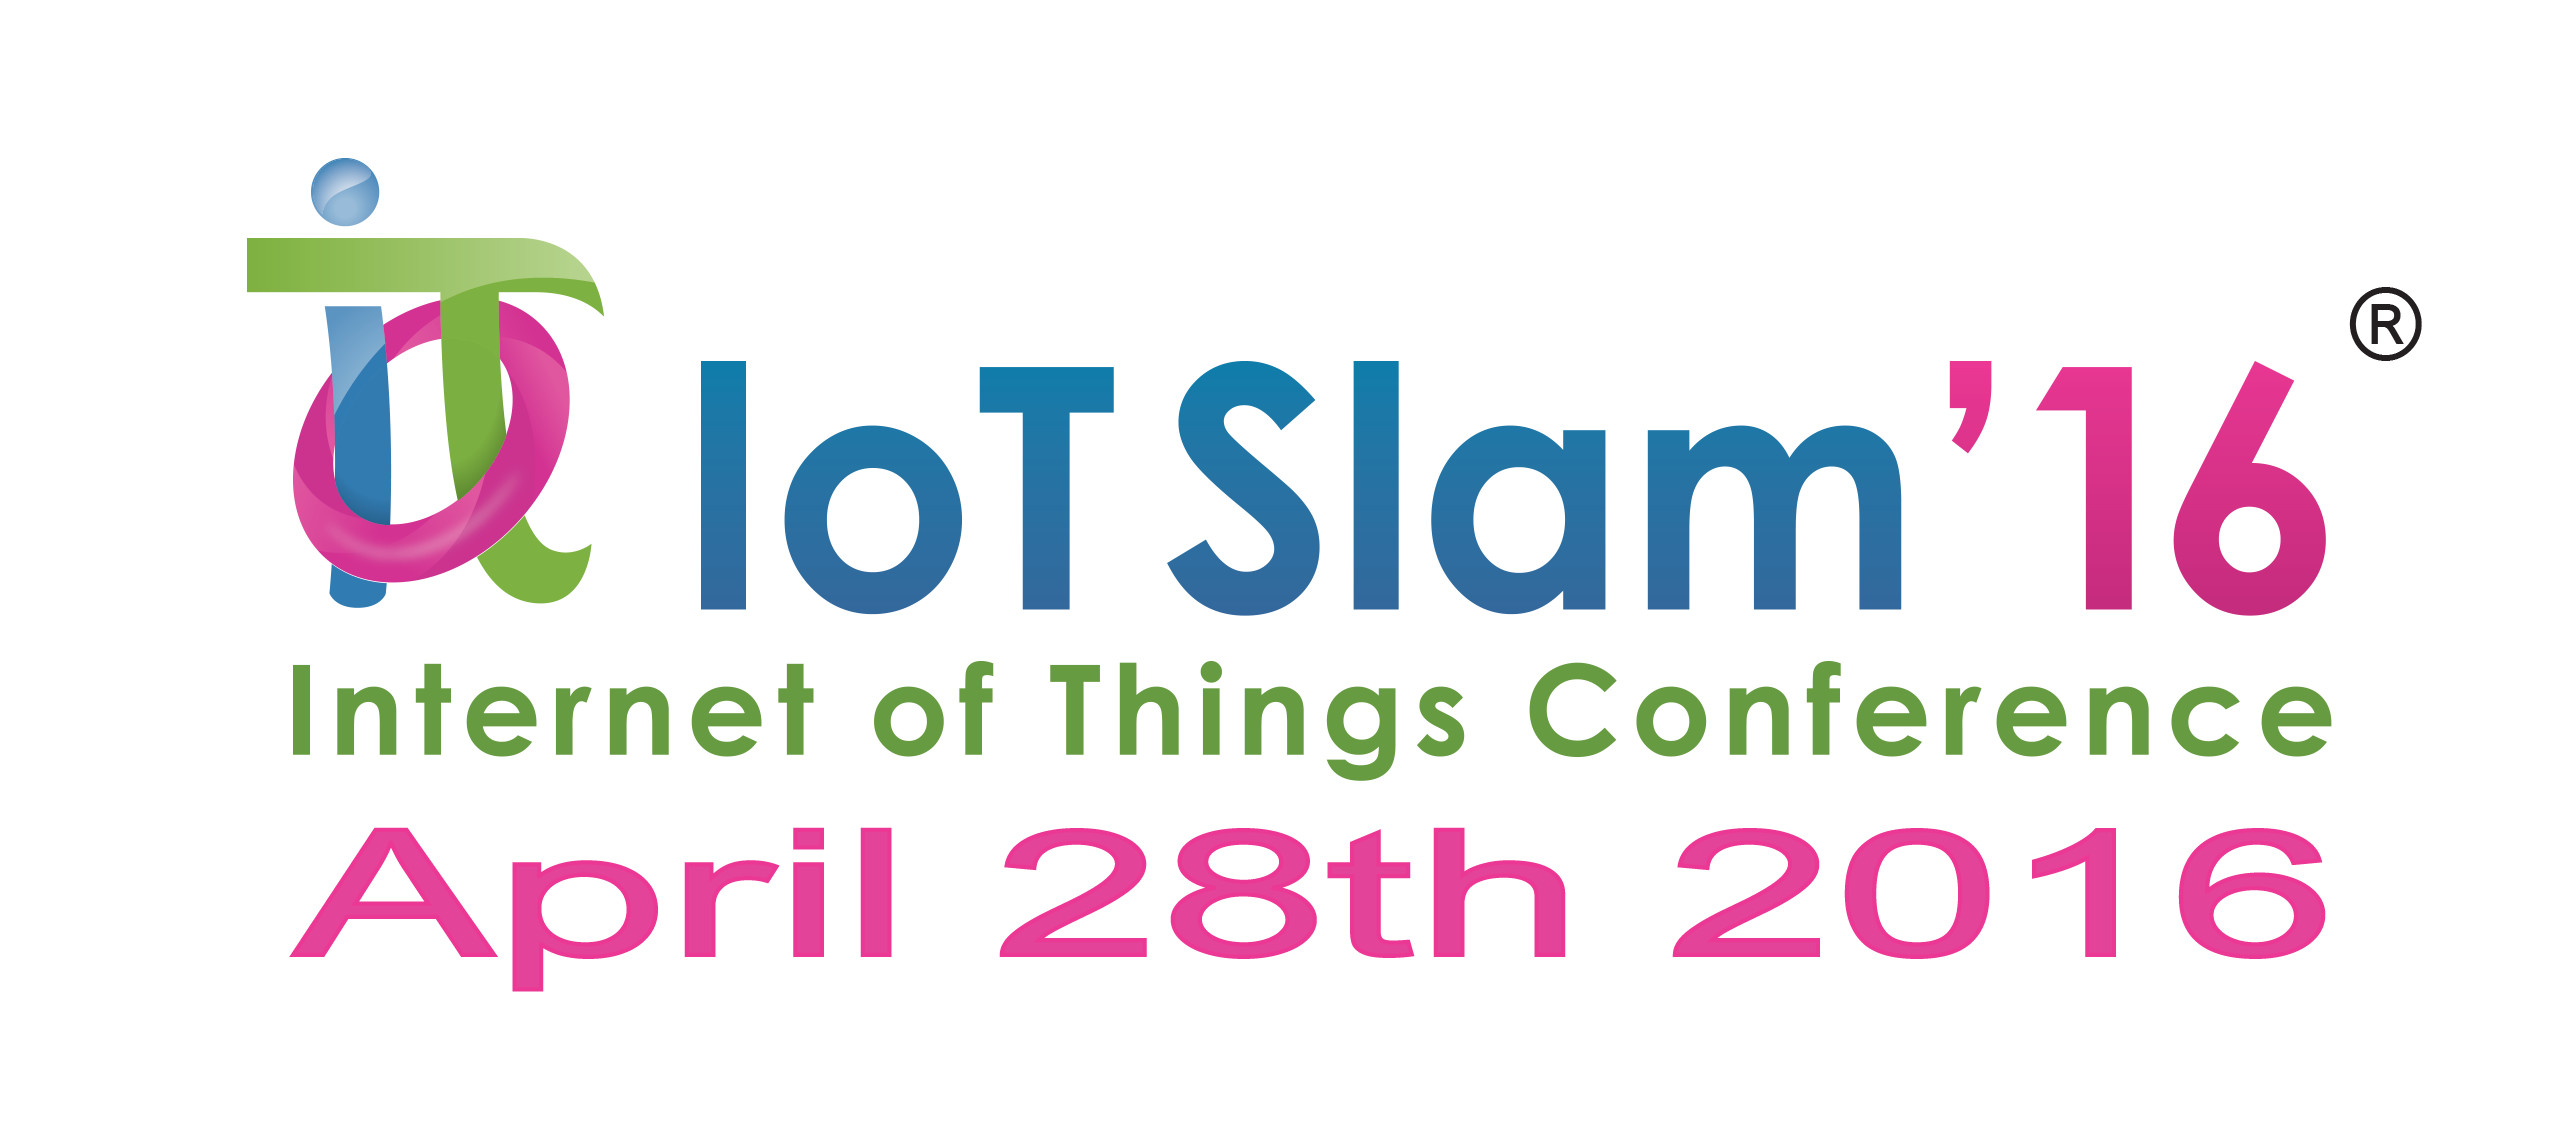 IoT Slam 2016 Second International Virtual Internet of Things Conference